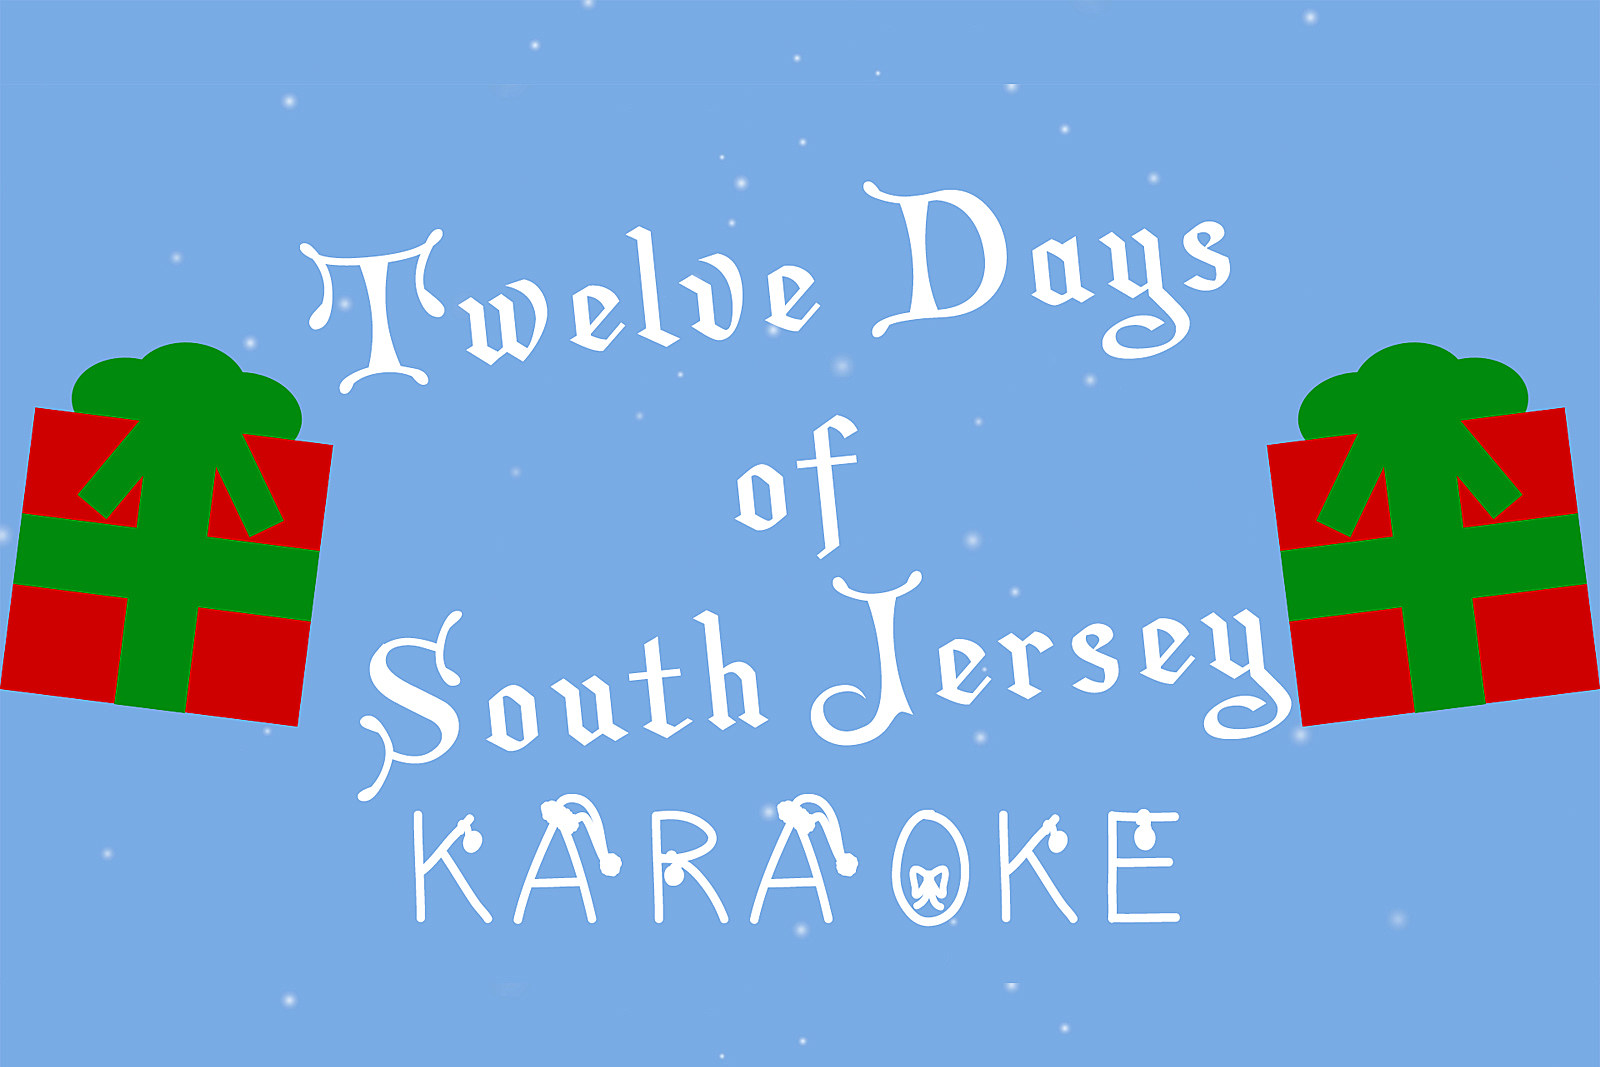 12 days of south jersey karaoke video - Blue Christmas Karaoke